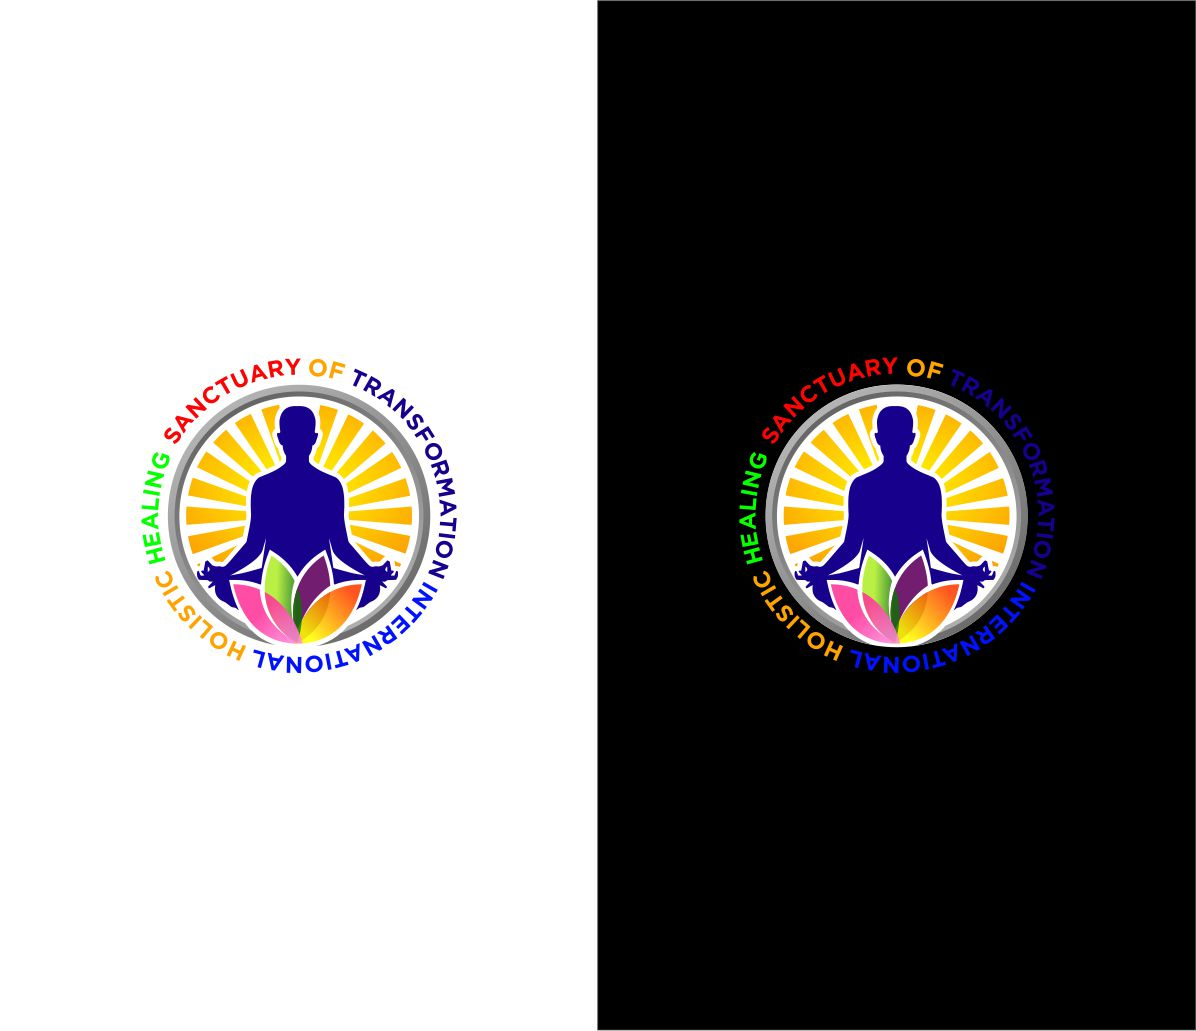 Logo Design by Raymond Garcia - Entry No. 36 in the Logo Design Contest Fun Logo Design for Sanctuary of Transformation.